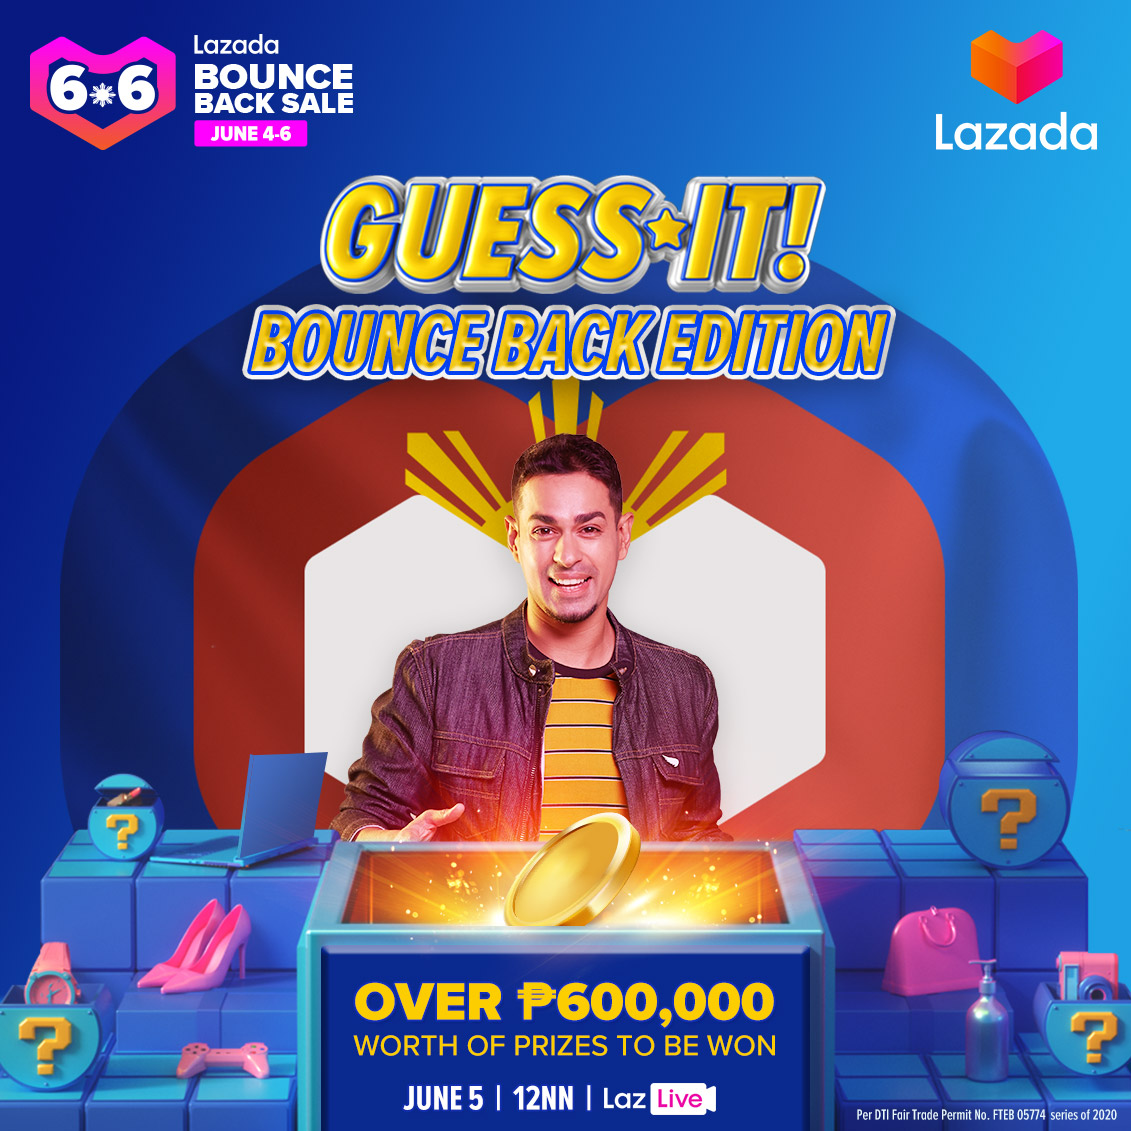 The GUESS IT! 6.6 Bounce Back edition is going LIVE in a FEW MINUTES! Plus, weve lined up BIGGER PRIZES and more chances of winning too! Set your alarms for 12NN and click lzd.co/GuessItBounceB… to catch your fave quiz show with @sam_yg! #LazGuessItPH #LazadaPH66